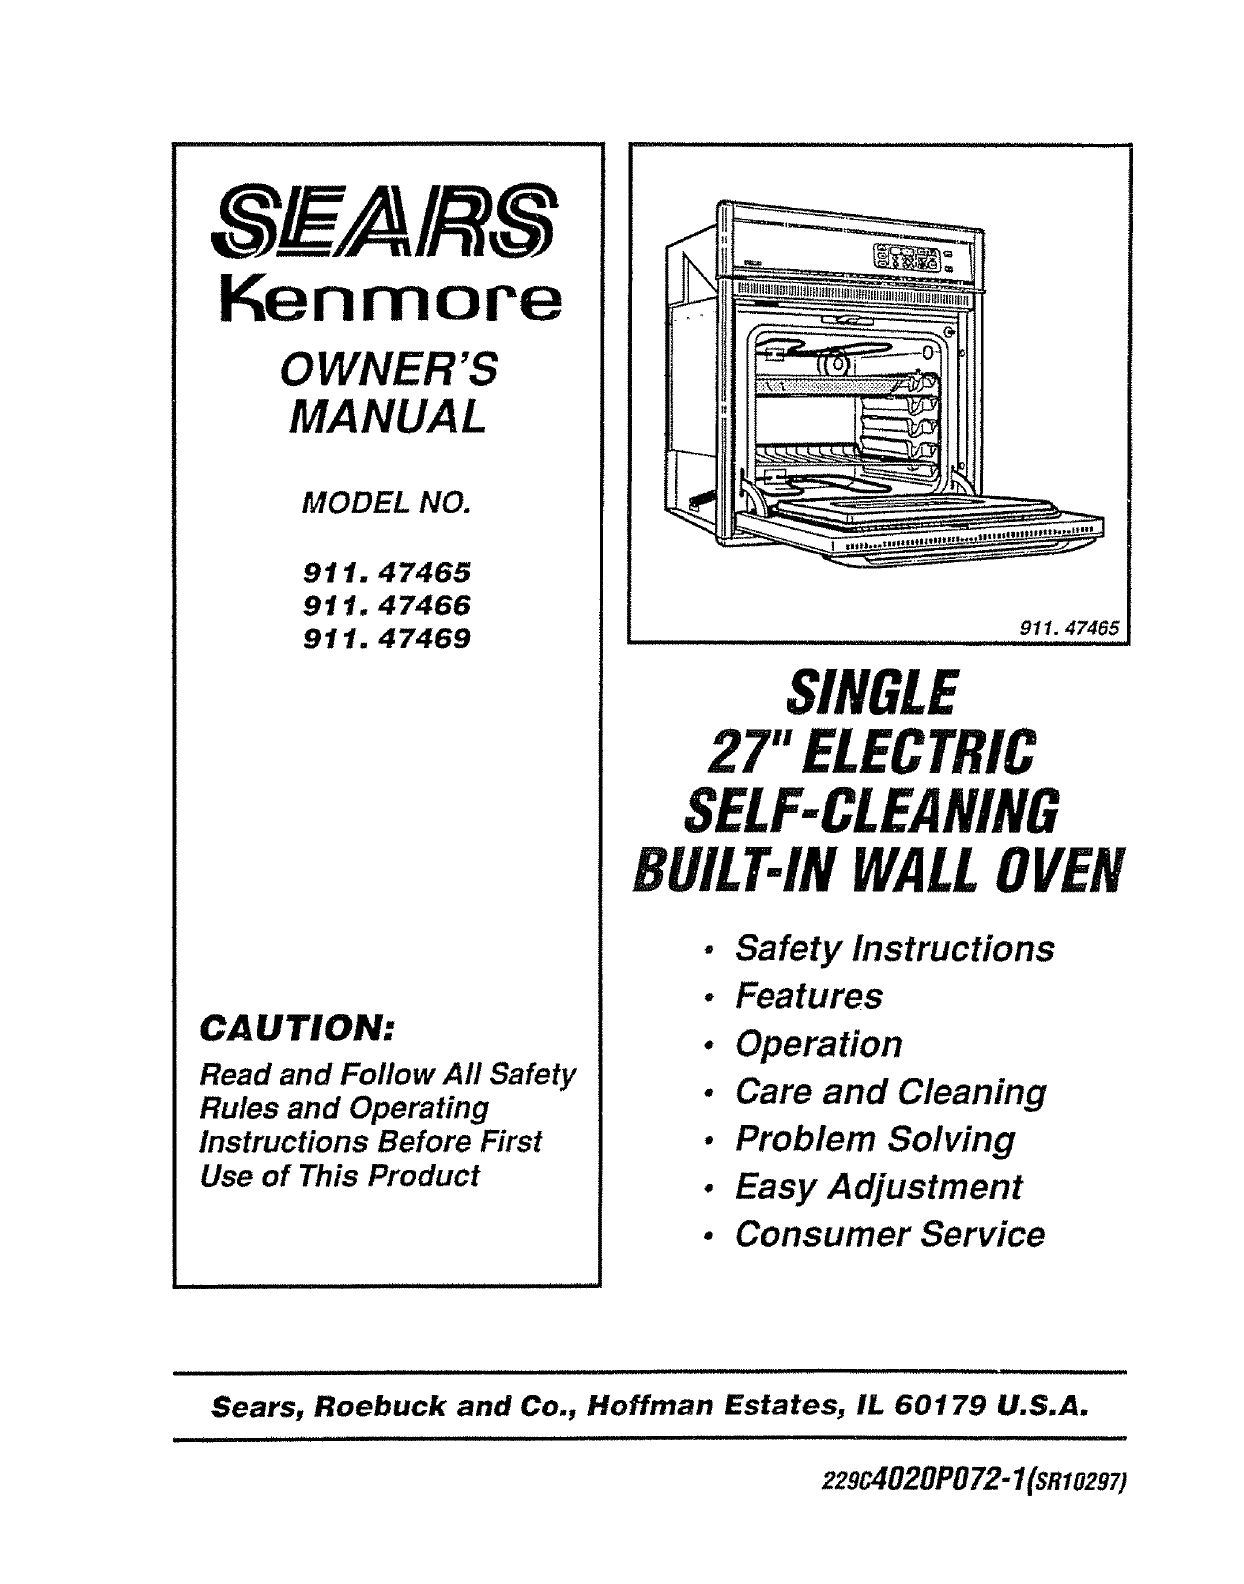 Kenmore Wall Oven Model 911